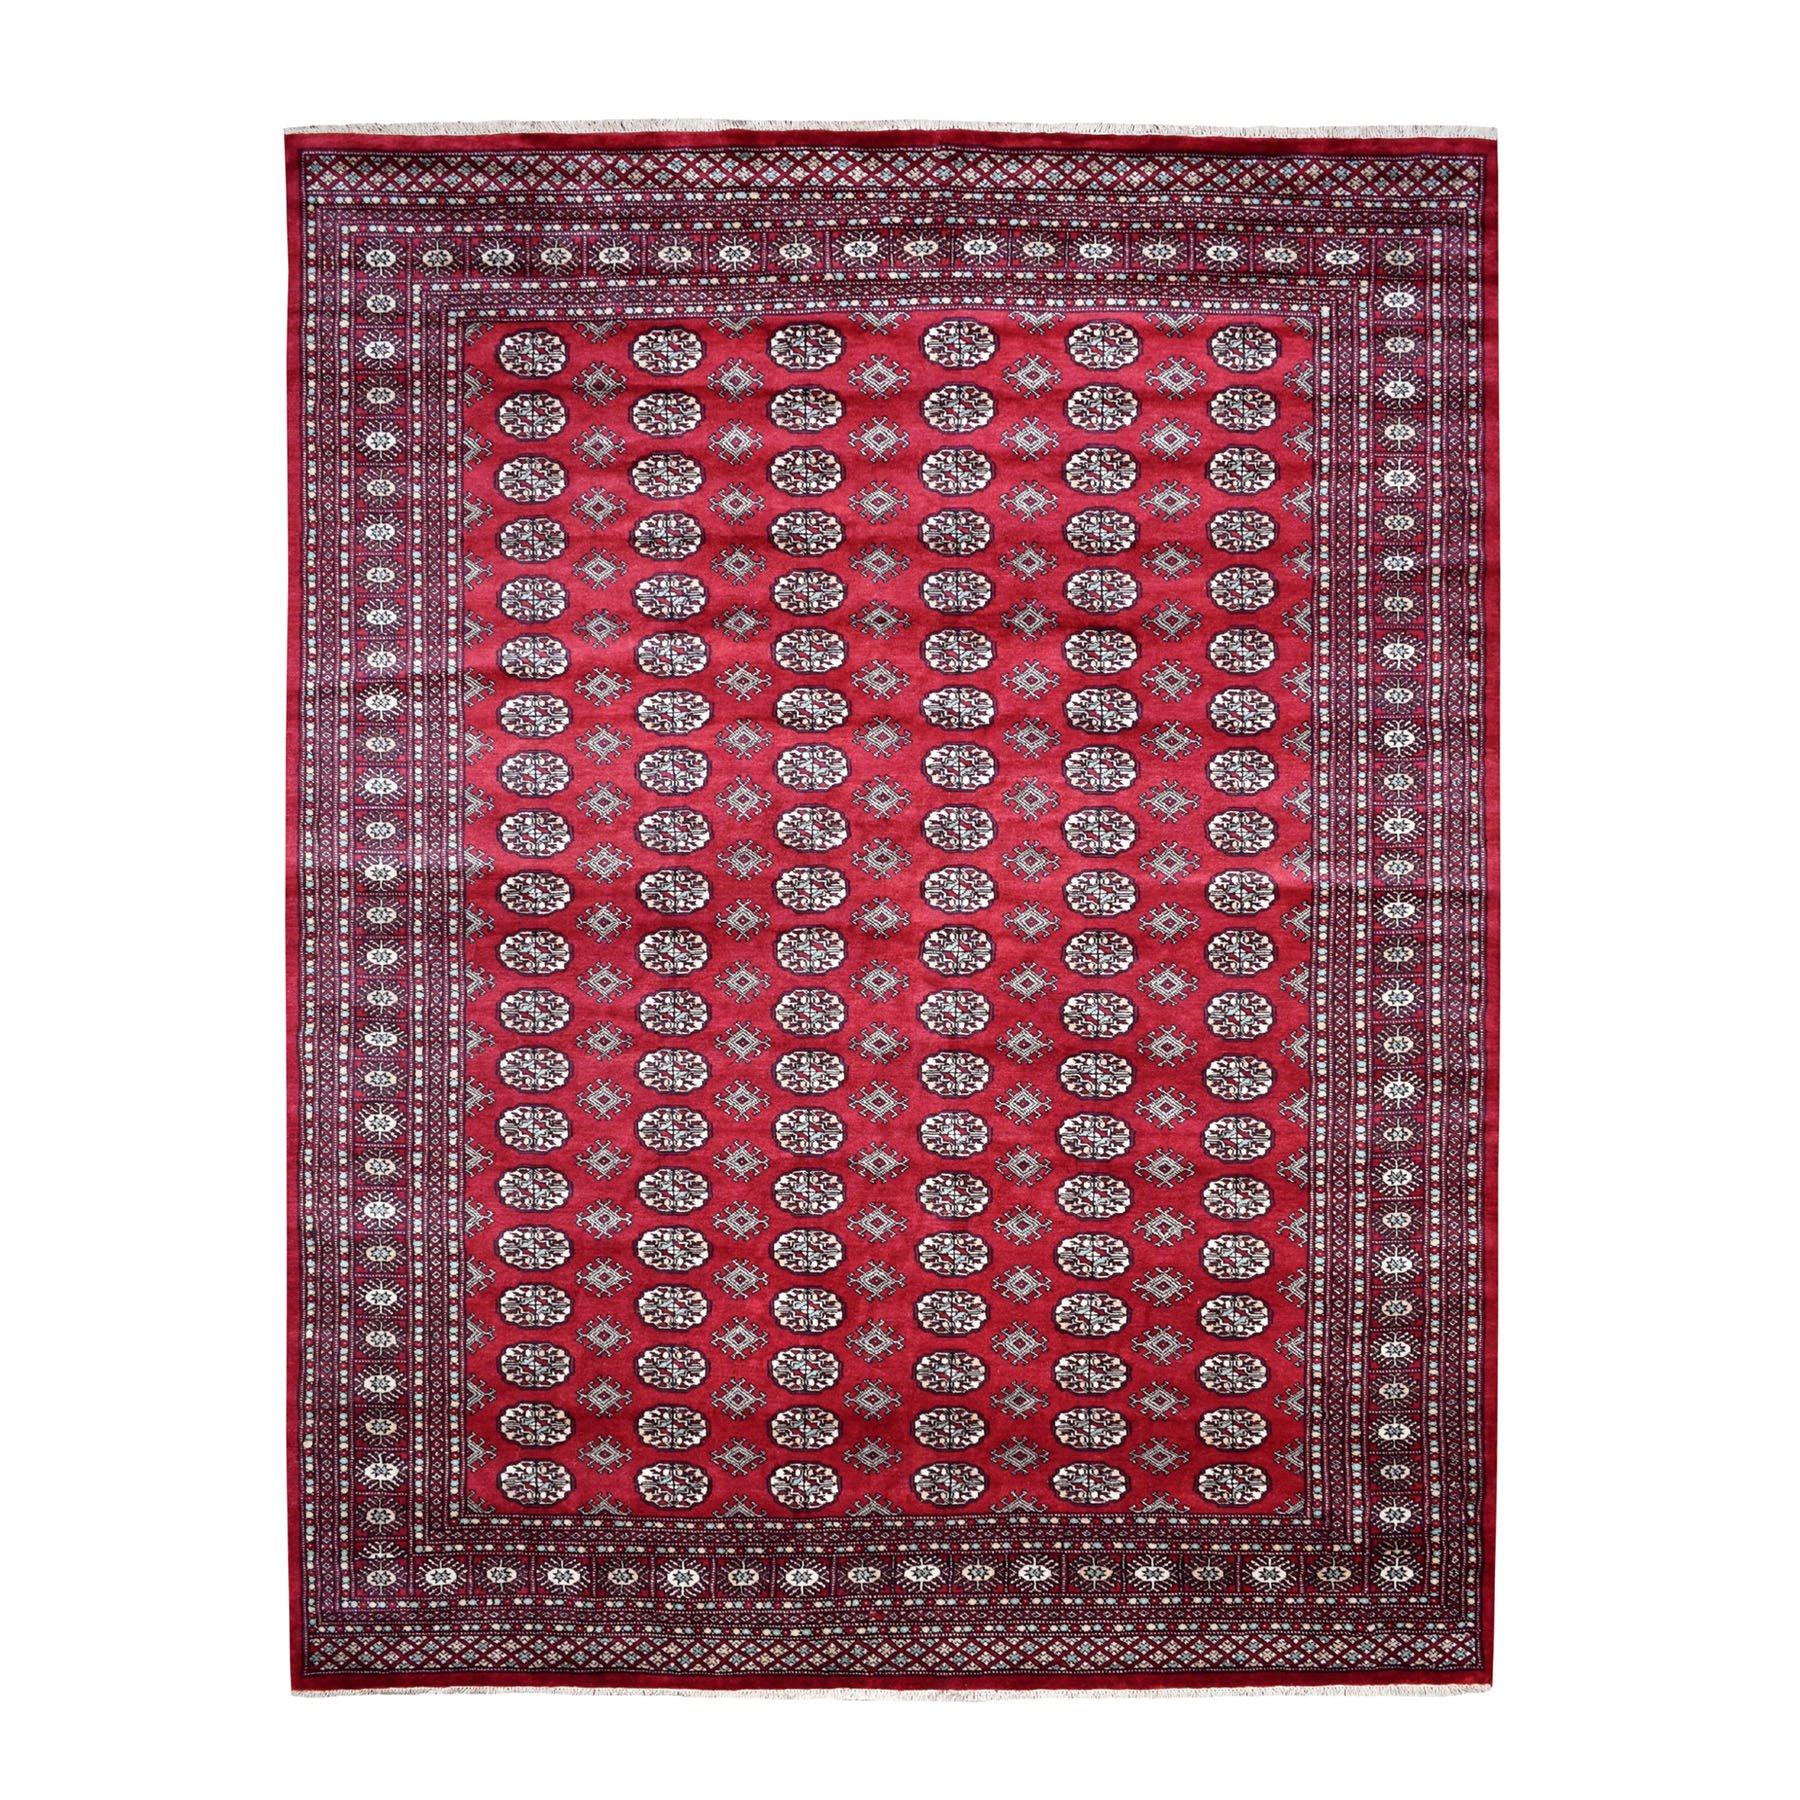 "8'2""x10'10"" Red Mori Bokara Elephant Feet Design Pure Wool Hand Knotted Oriental Rug"